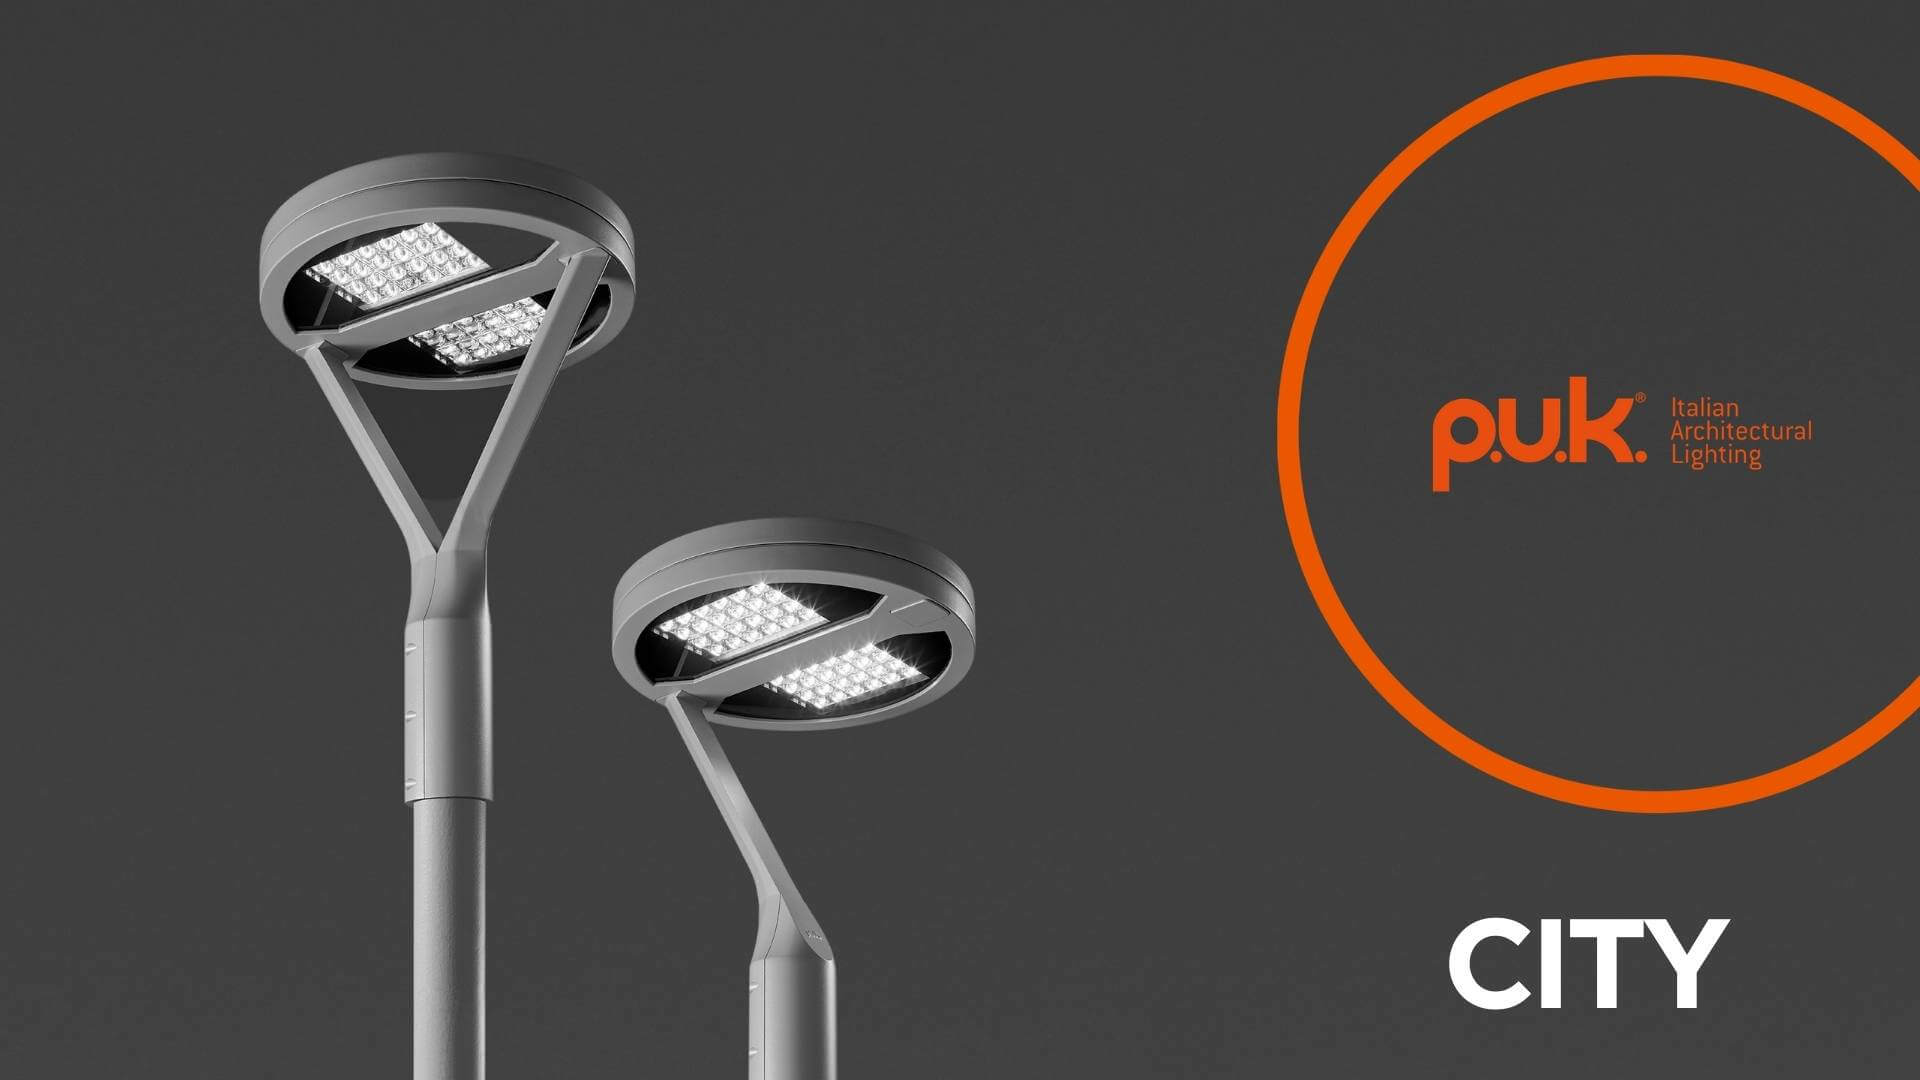 City 2.0: discover a new urban lighting masterpiece